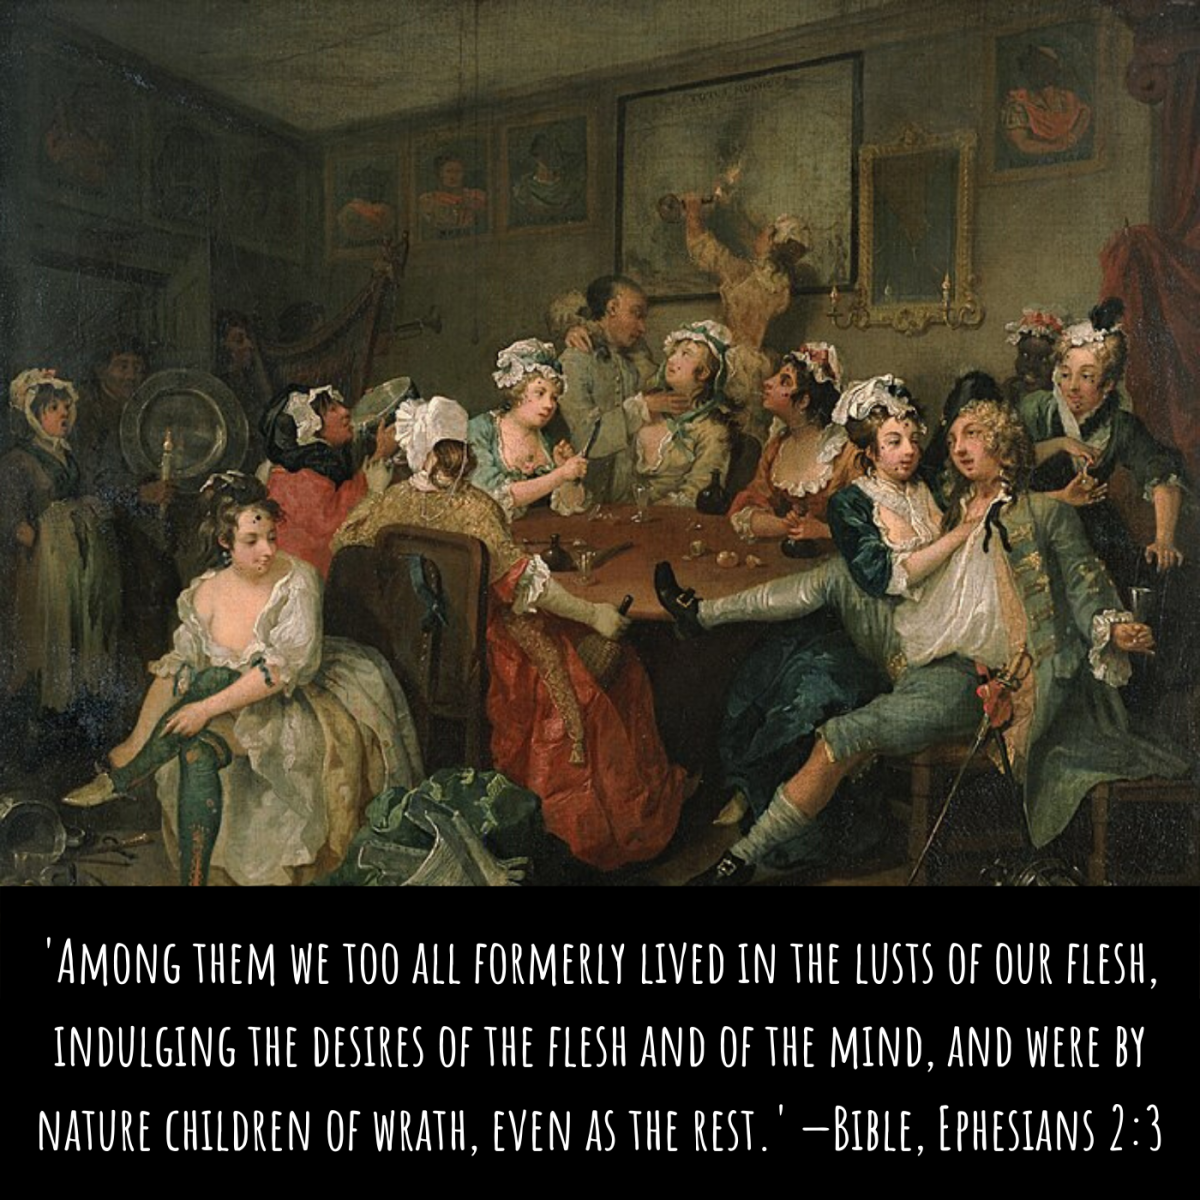 'Among them we too all formerly lived in the lusts of our flesh, indulging the desires of the flesh and of the mind, and were by nature children of wrath, even as the rest.' —Bible, Ephesians 2:3